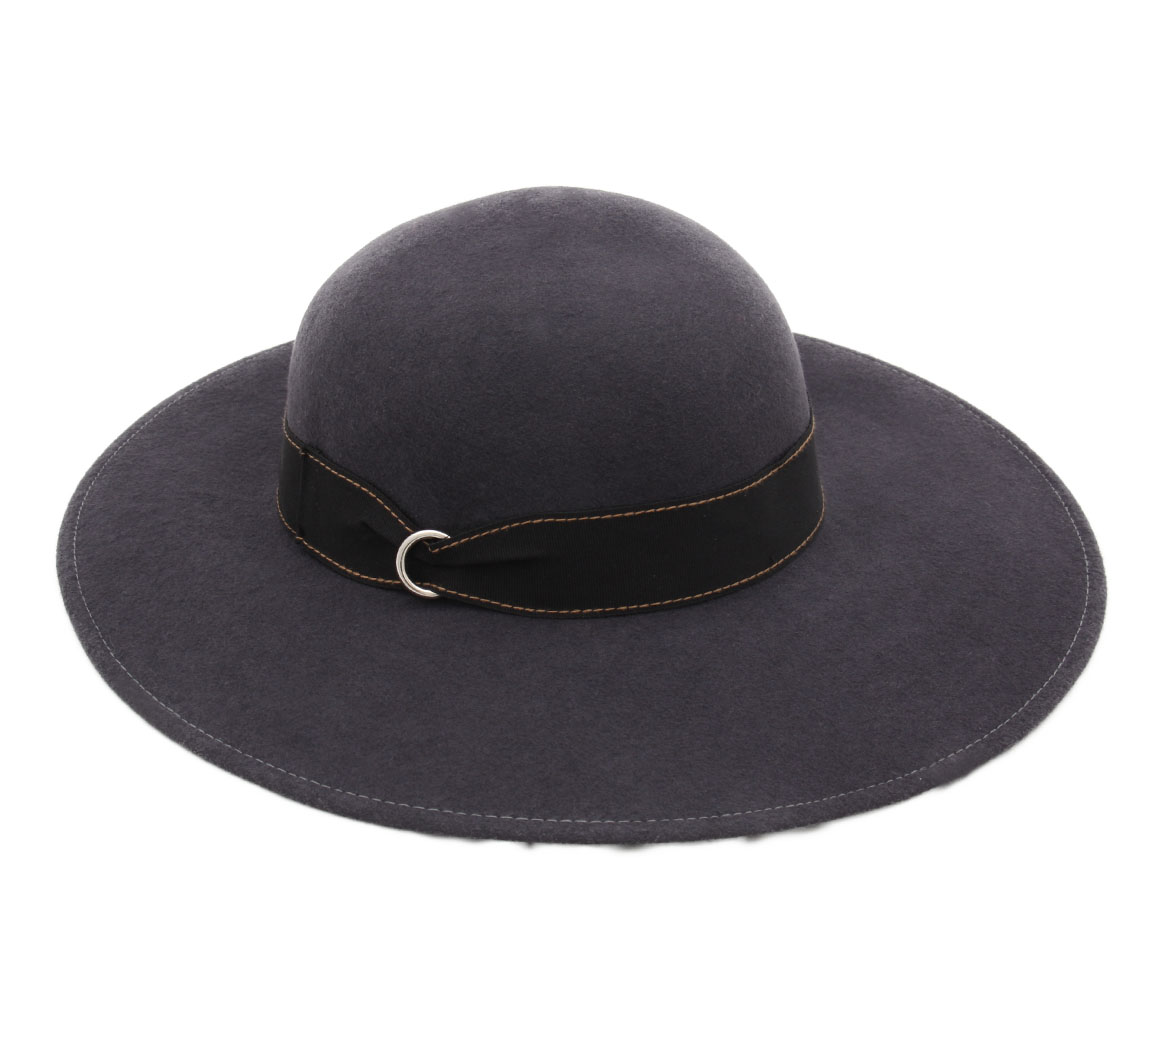 Feutre Cloche long brim